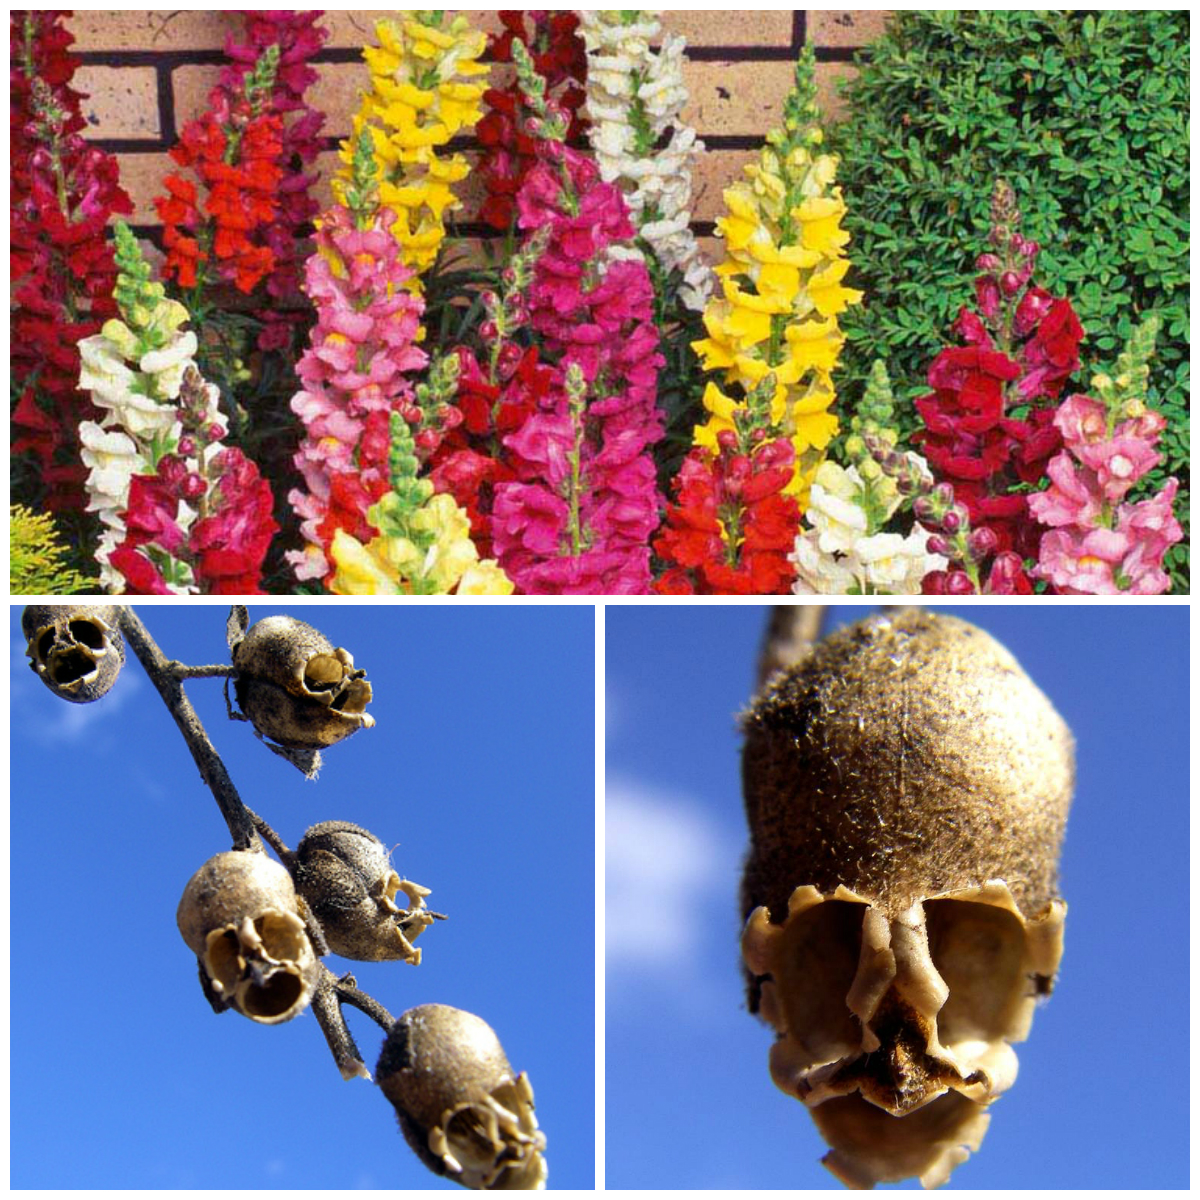 Flowers with the most unusual forms